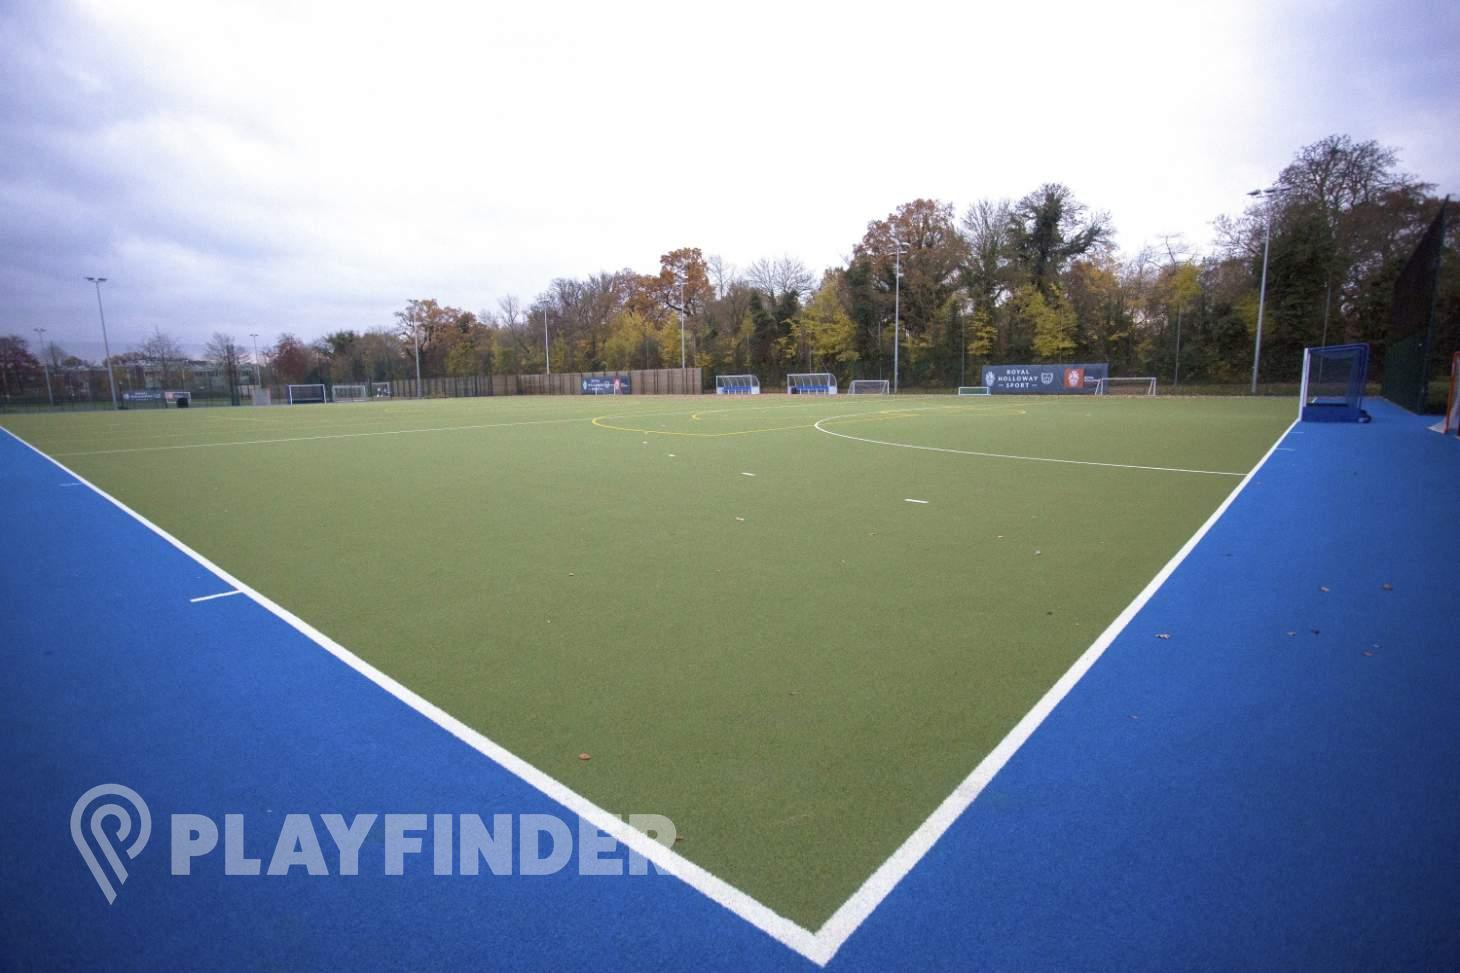 Royal Holloway University Sports Centre 7 a side | Astroturf football pitch